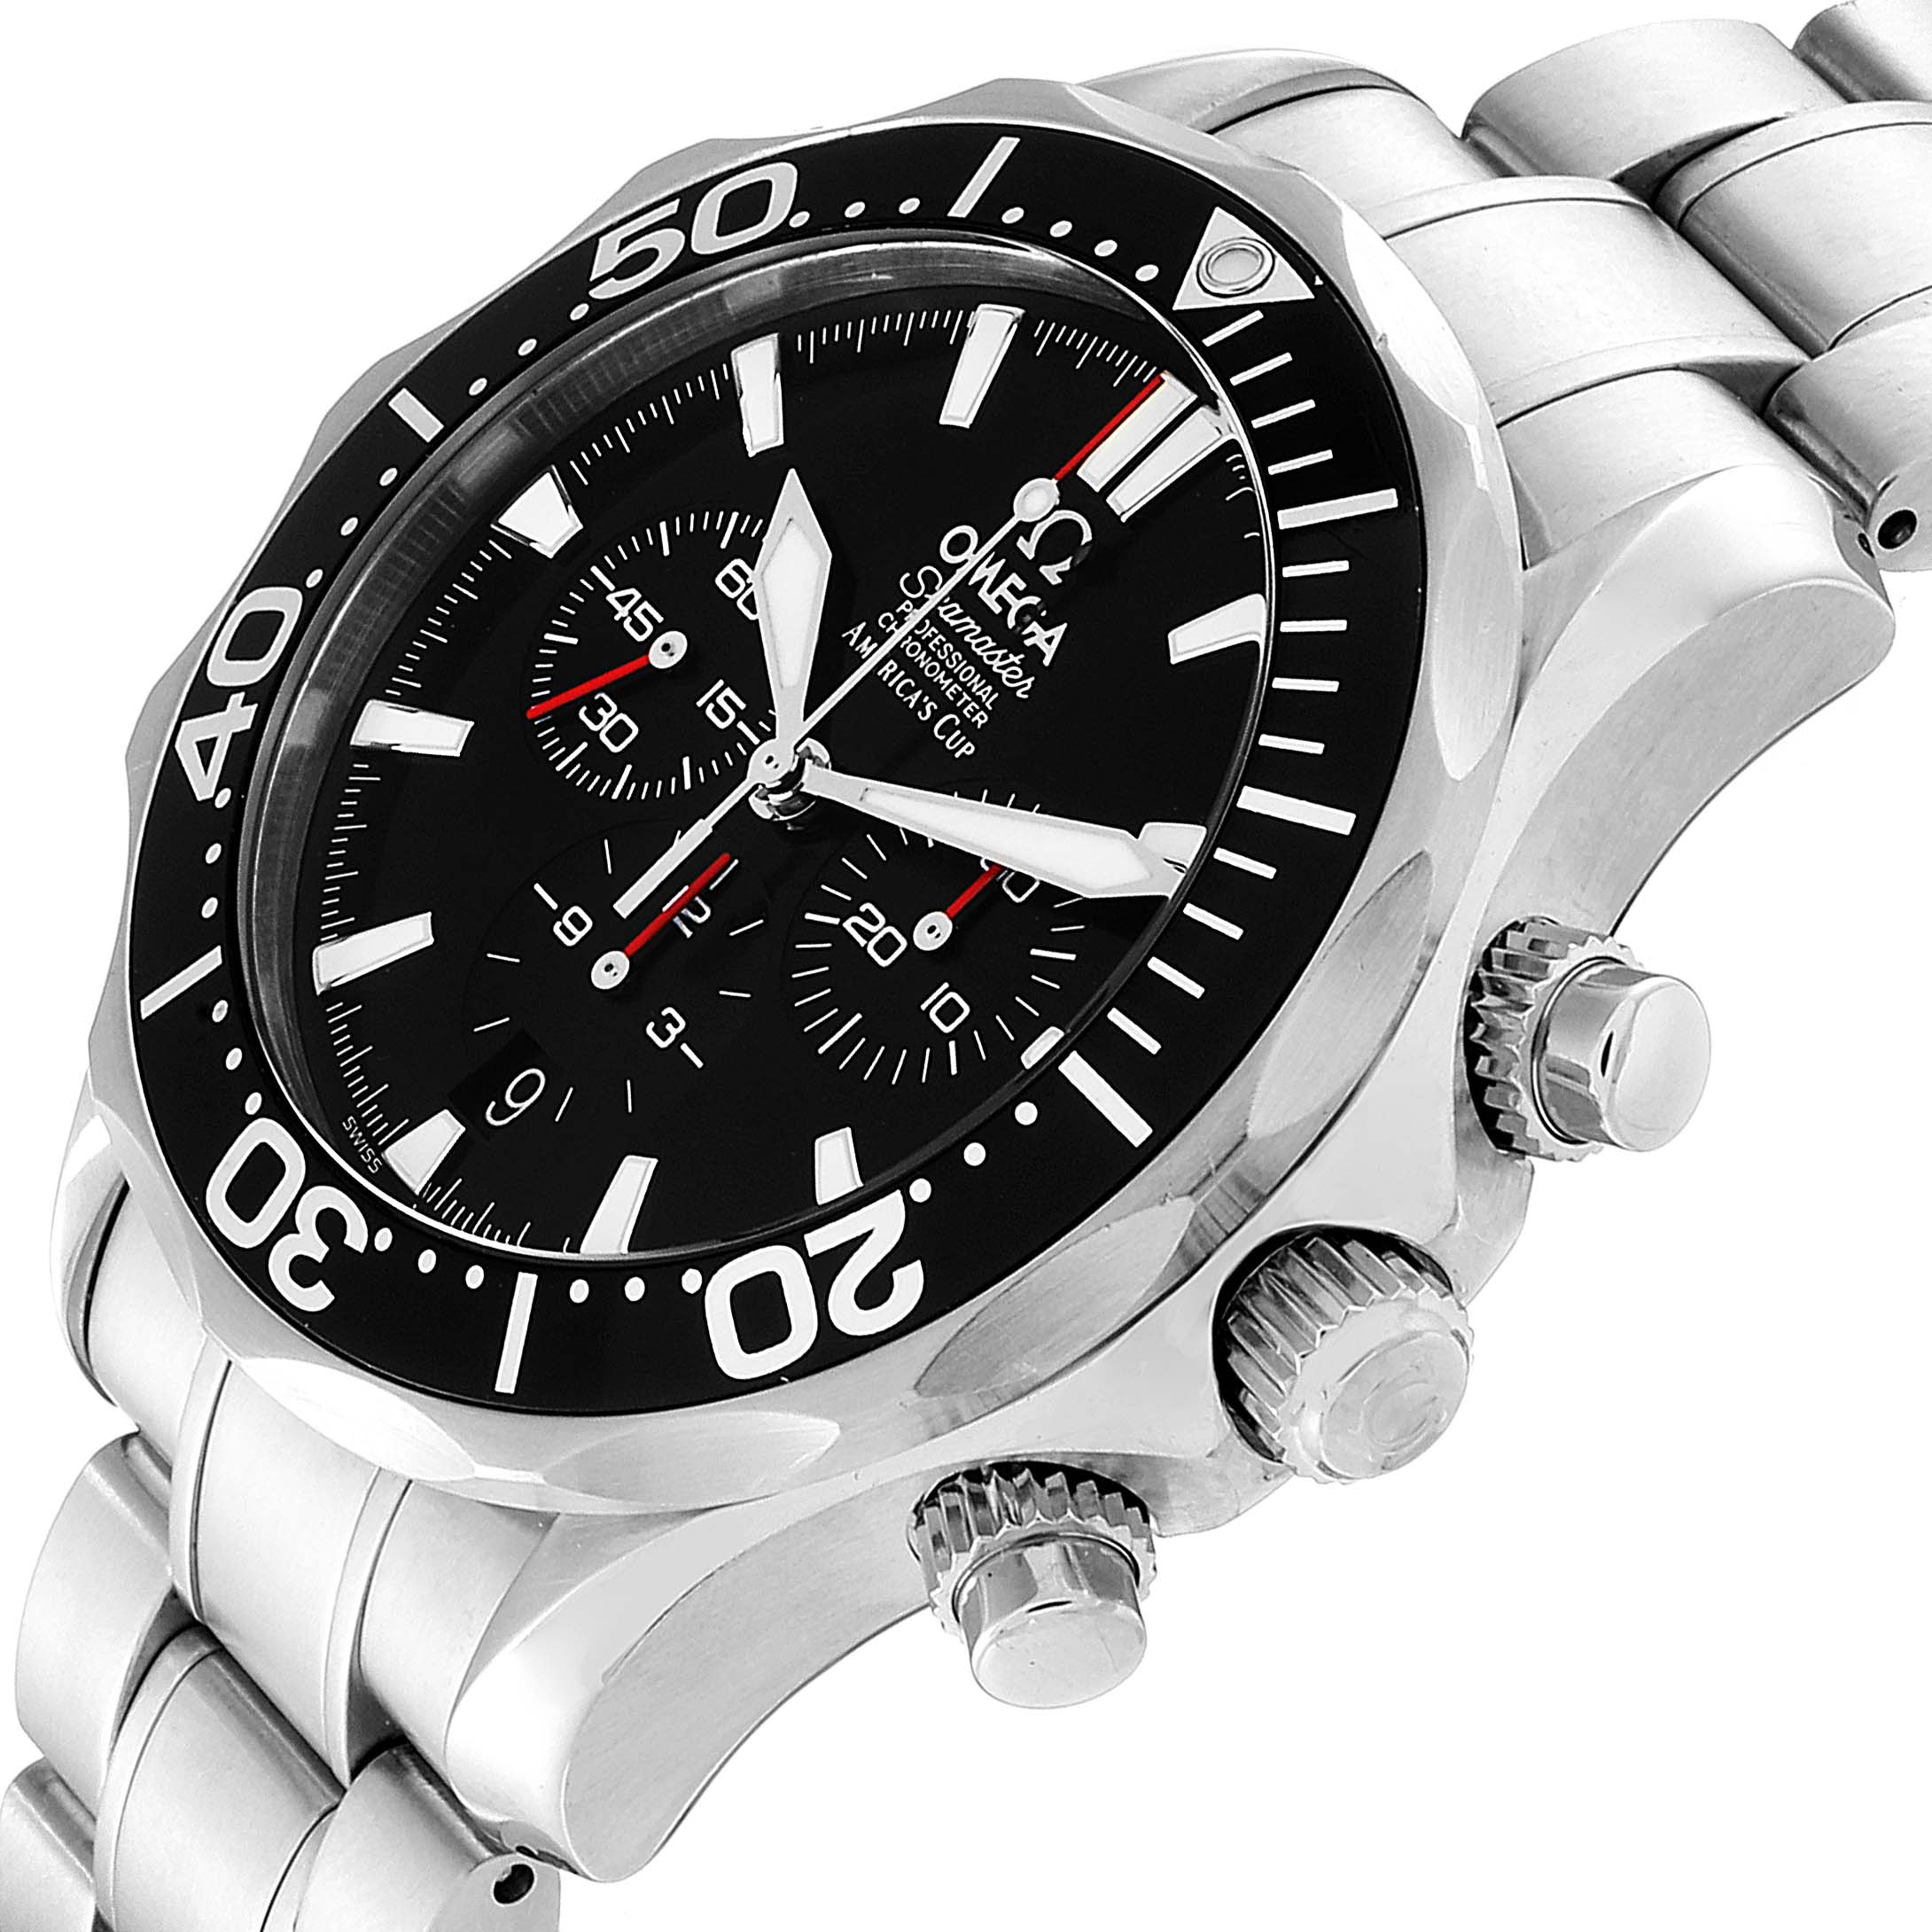 Omega Seamaster 300M Chronograph Americas Cup Watch 2594.50.00 Box Card SwissWatchExpo